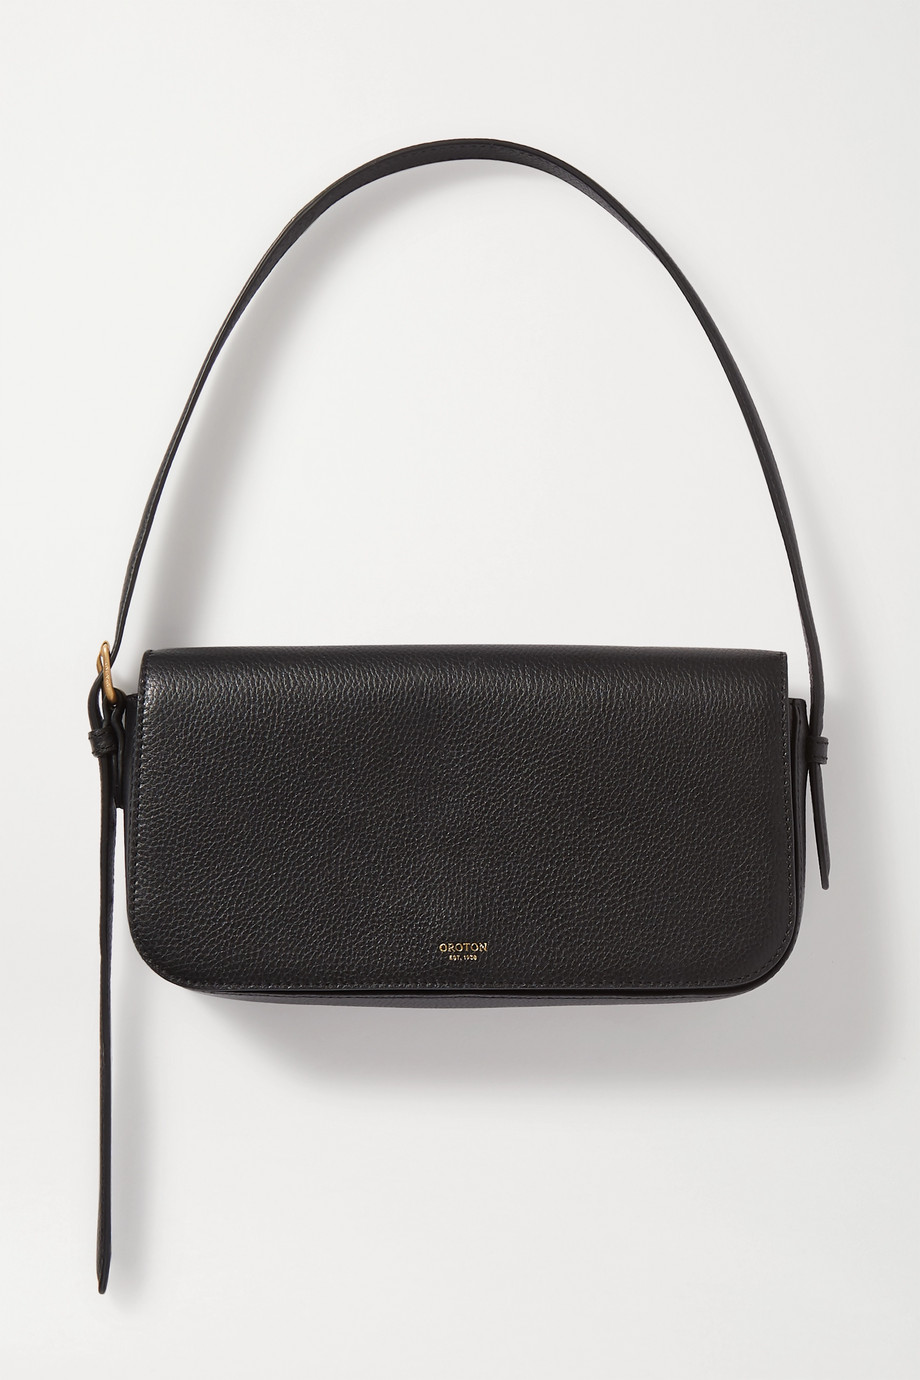 Oroton Anouk textured-leather shoulder bag